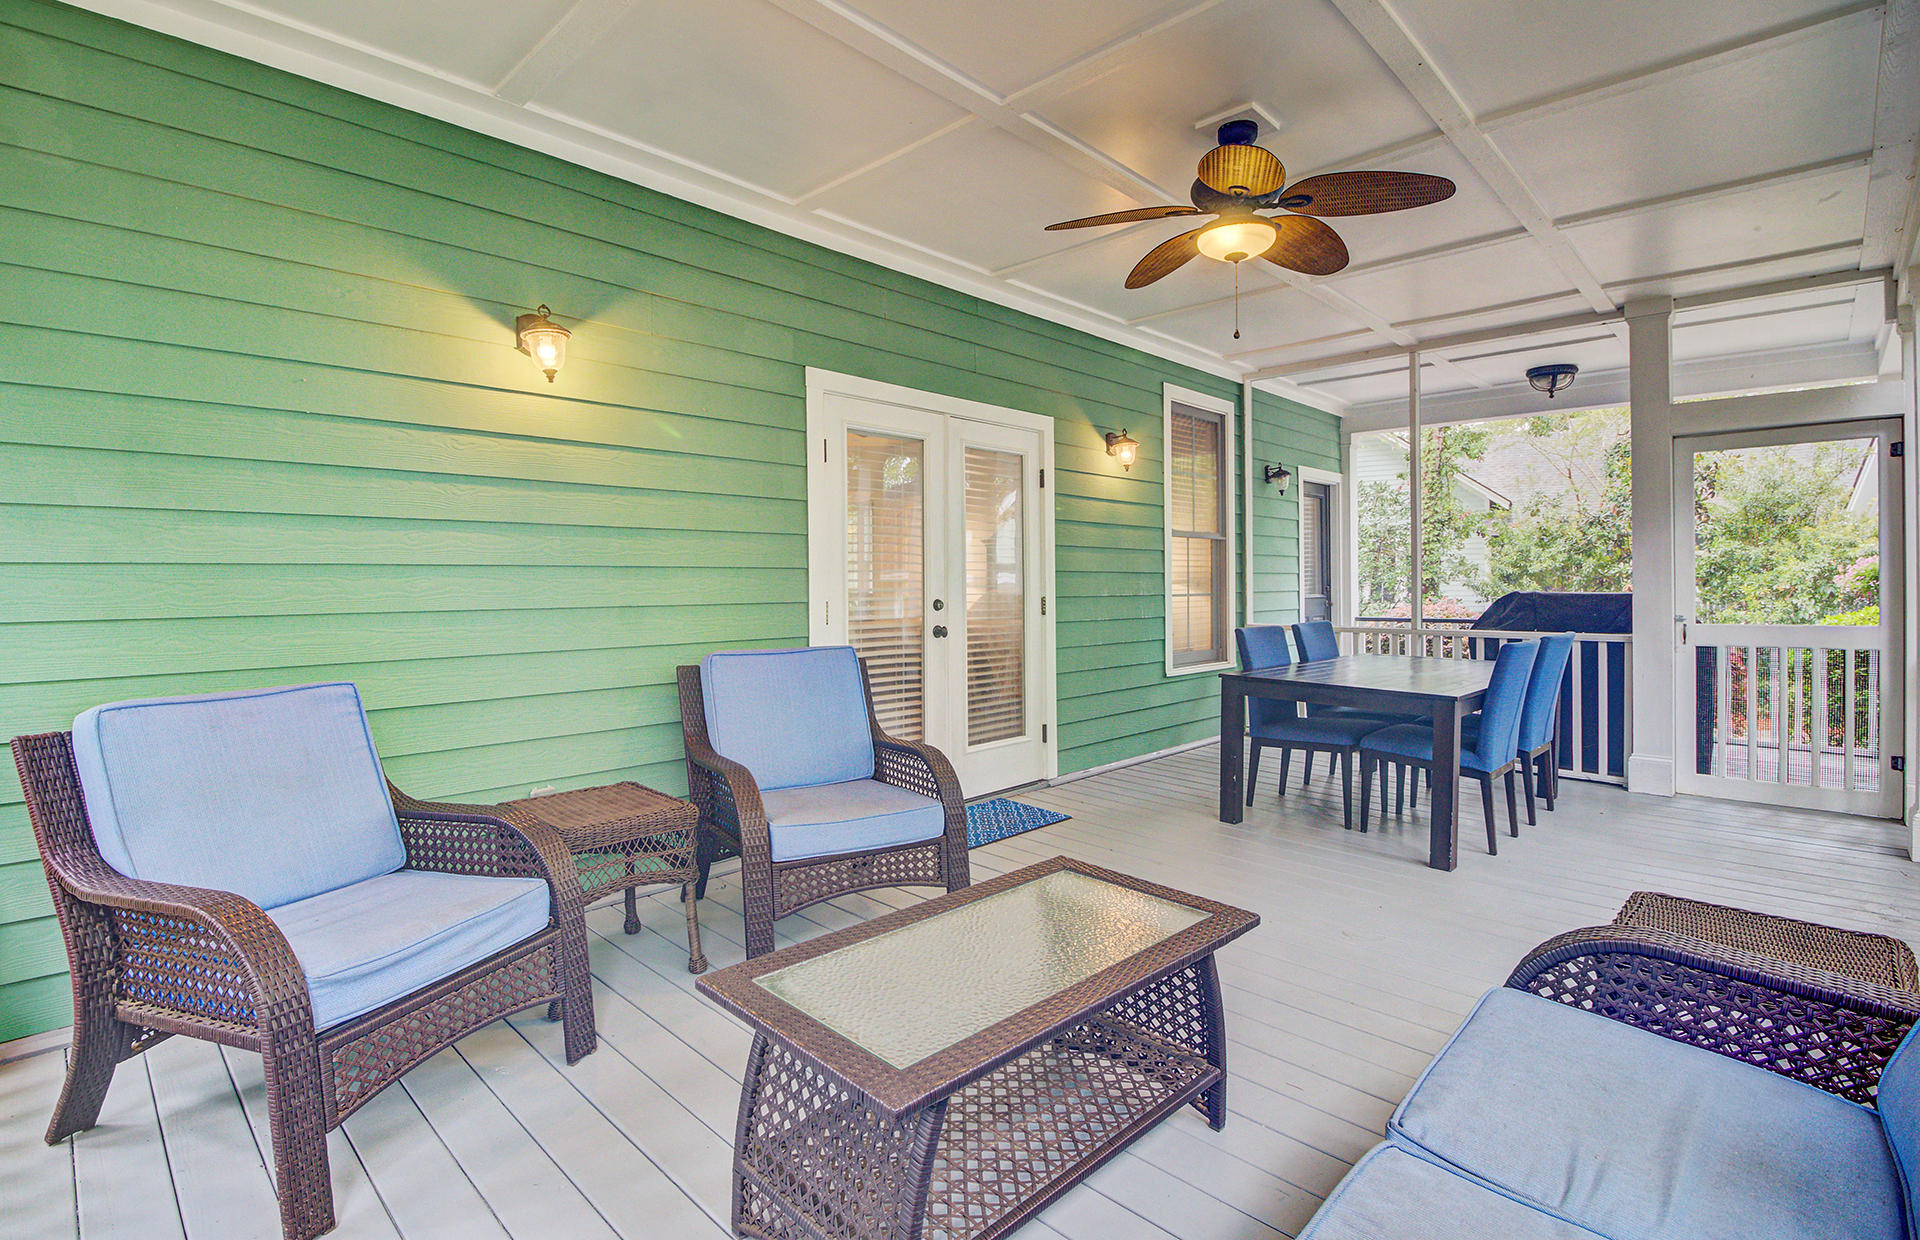 The Villages In St Johns Woods Homes For Sale - 5032 Coral Reef, Johns Island, SC - 8